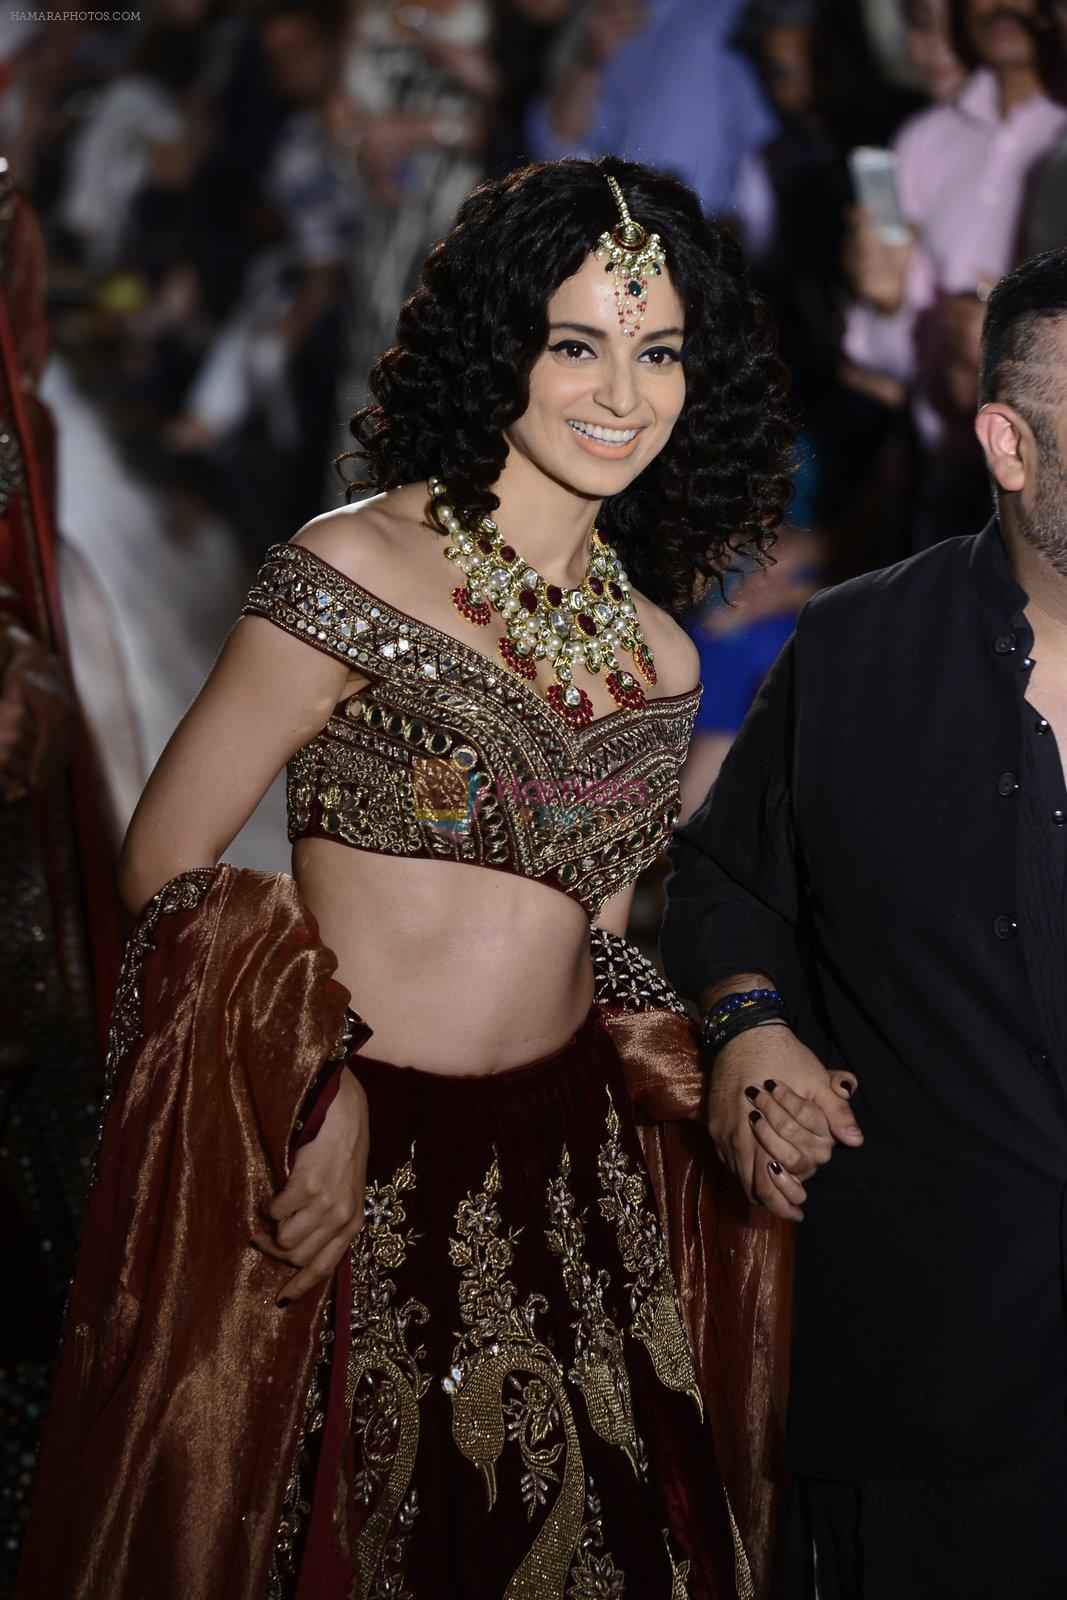 Kangana Ranaut walks for Manav Gangwani latest collection Begum-e-Jannat at the FDCI India Couture Week 2016 on 24 July 2016